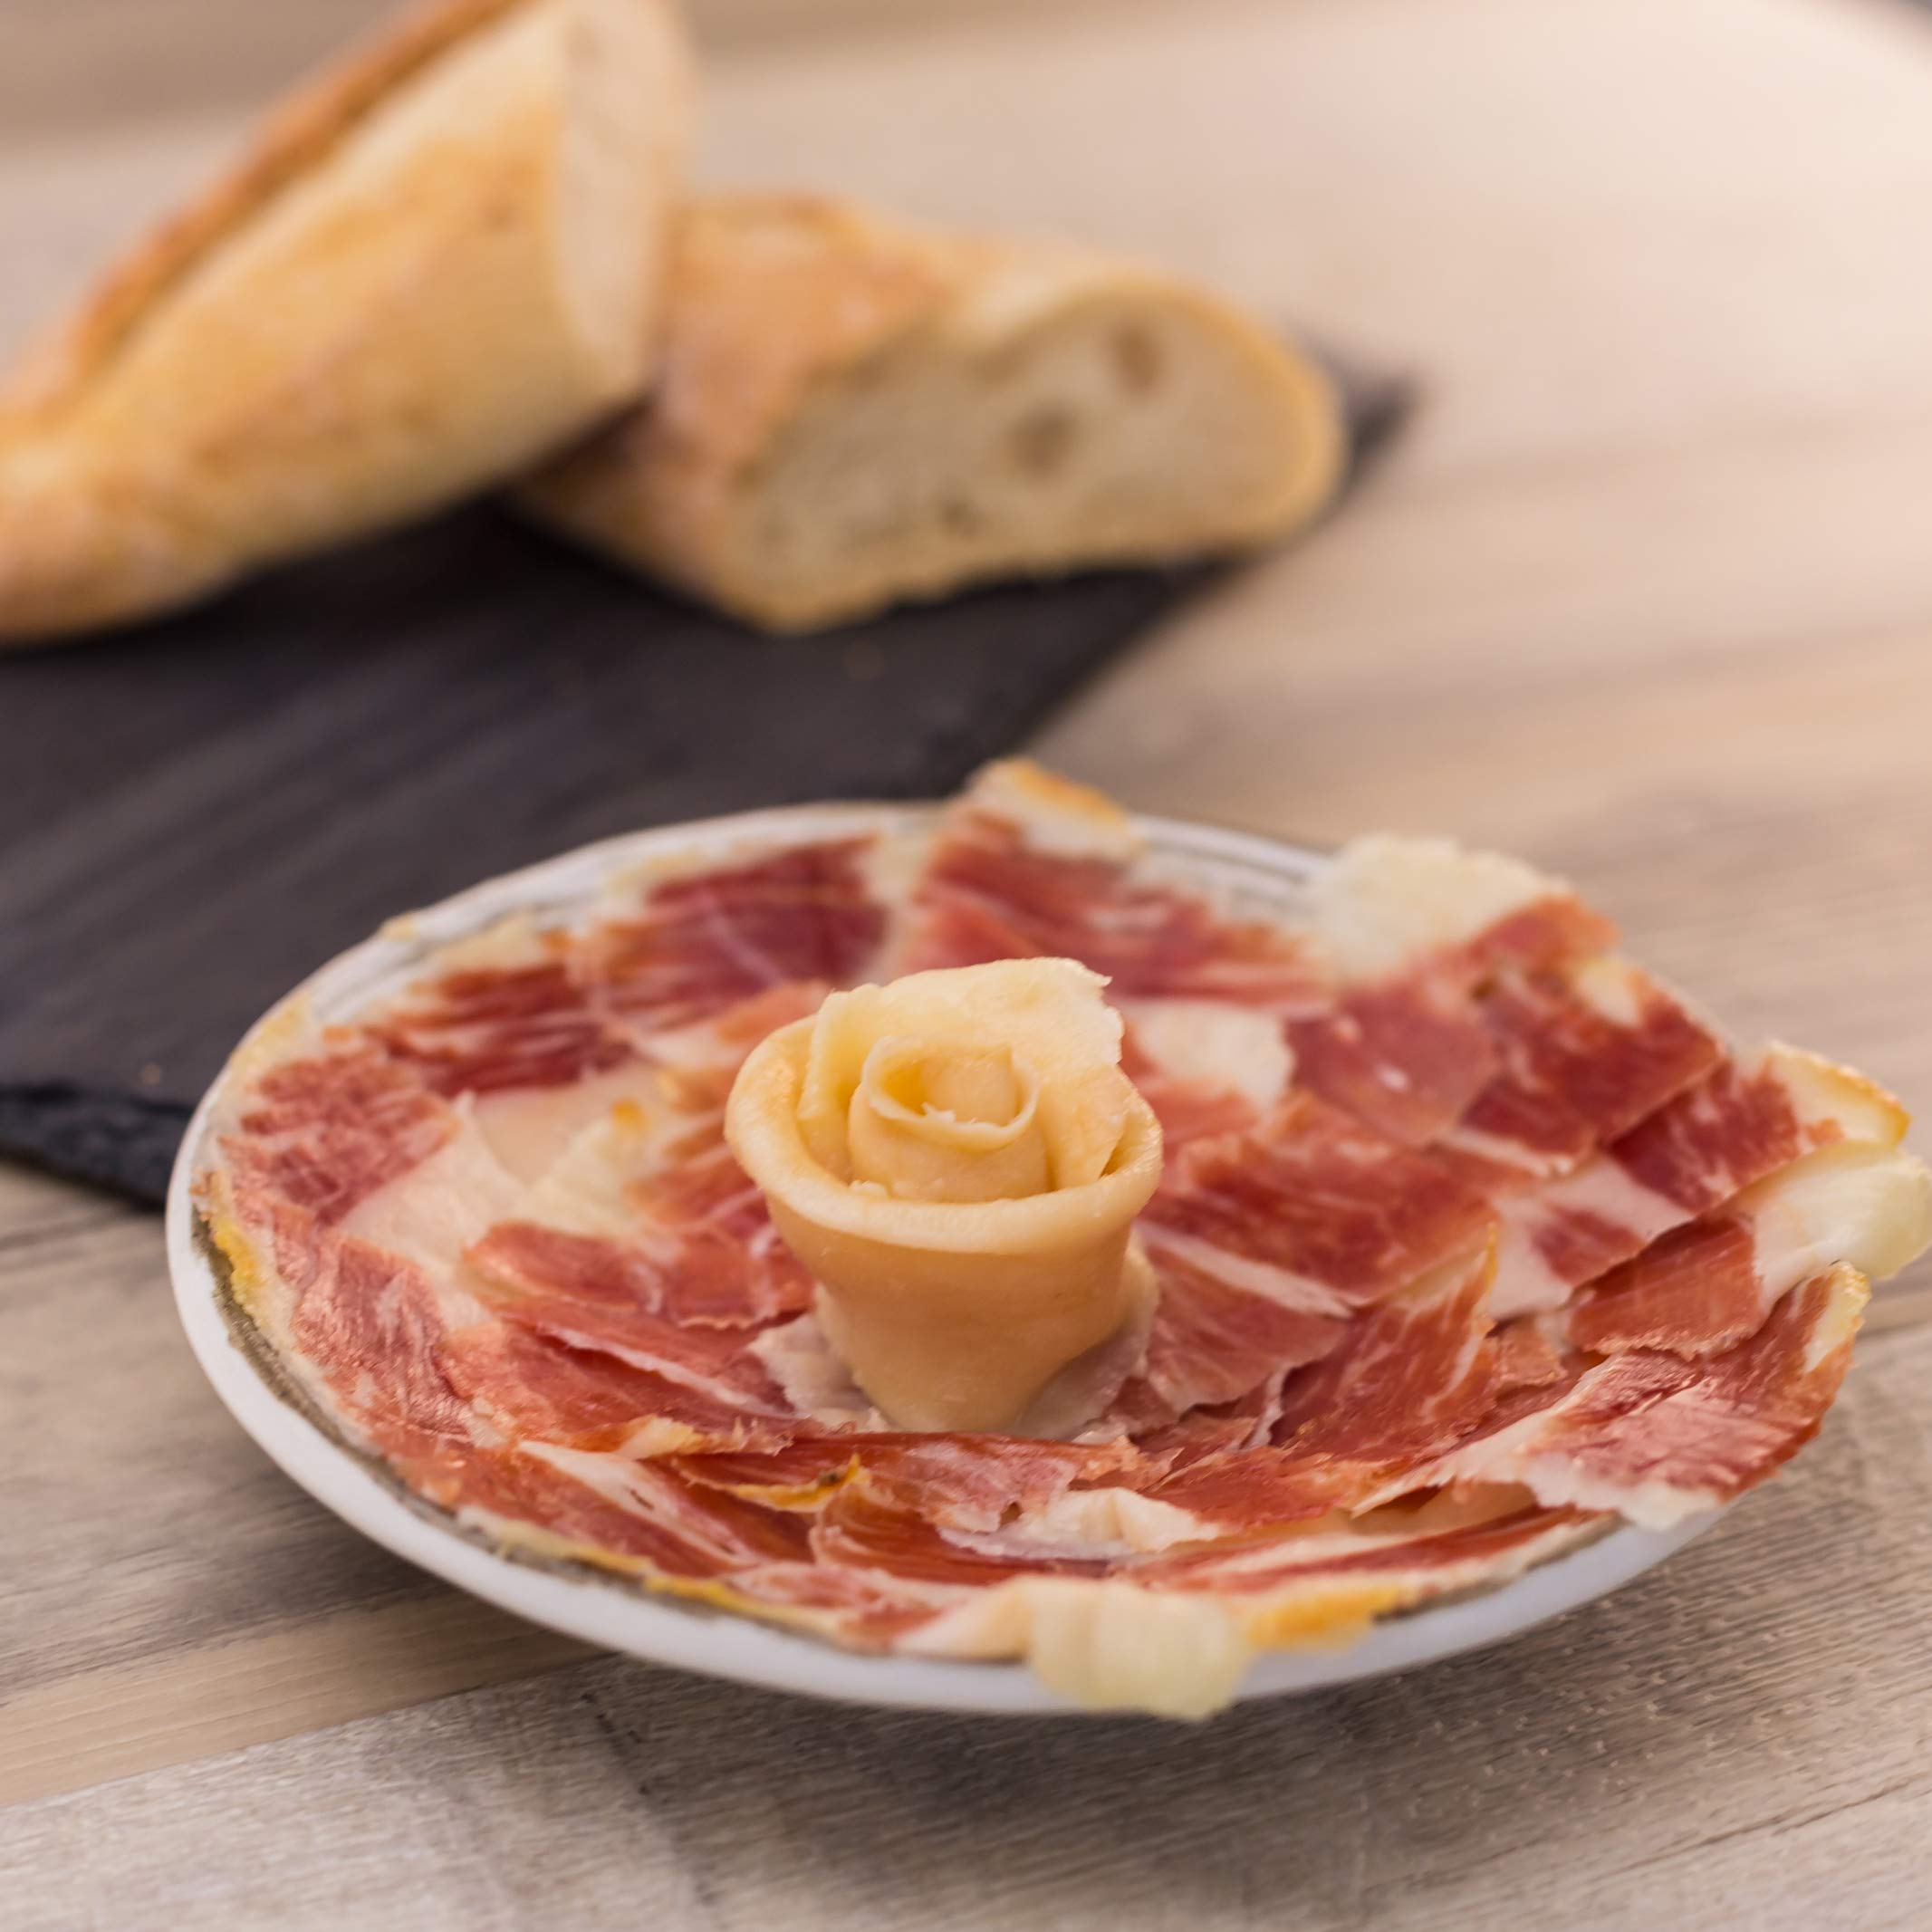 La Jamoteca - Pure Bellota Iberico Ham, Premium Quality, Hand Carved Style, 4 years curated, 100% Iberico, Pata Negra, 4 Packages - (2oz Each) by Loveiberico (Image #6)